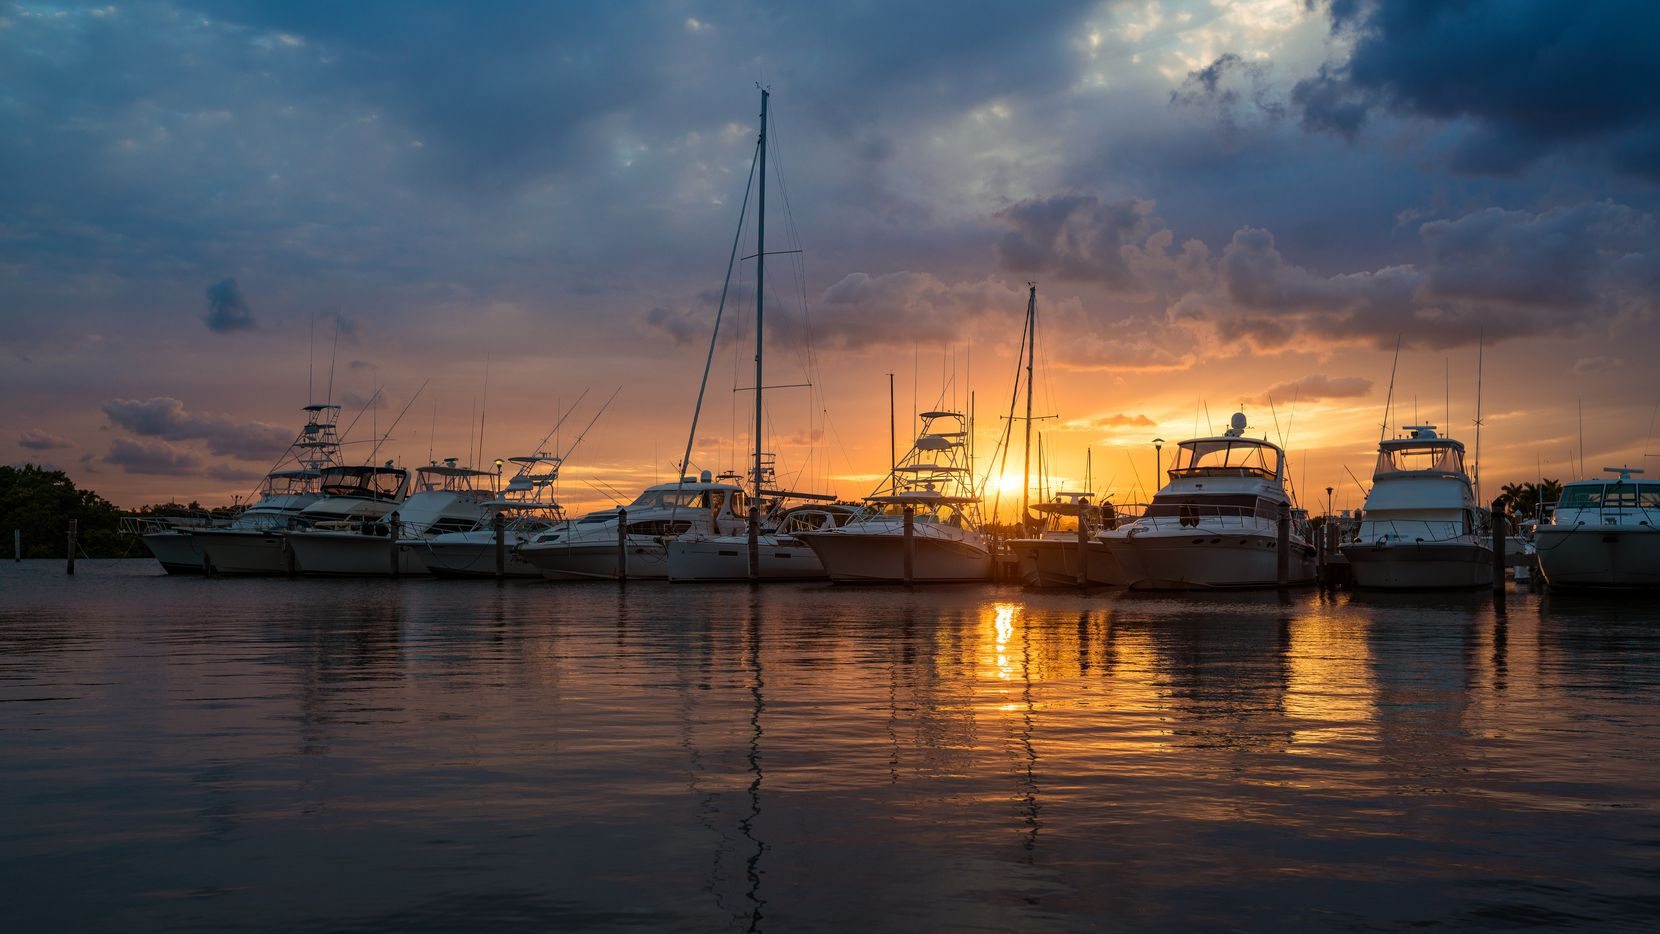 Dallas-based Safe Harbor Marinas describes itself as the world's largest owner and operator of marinas, with 40,000 members in its network.